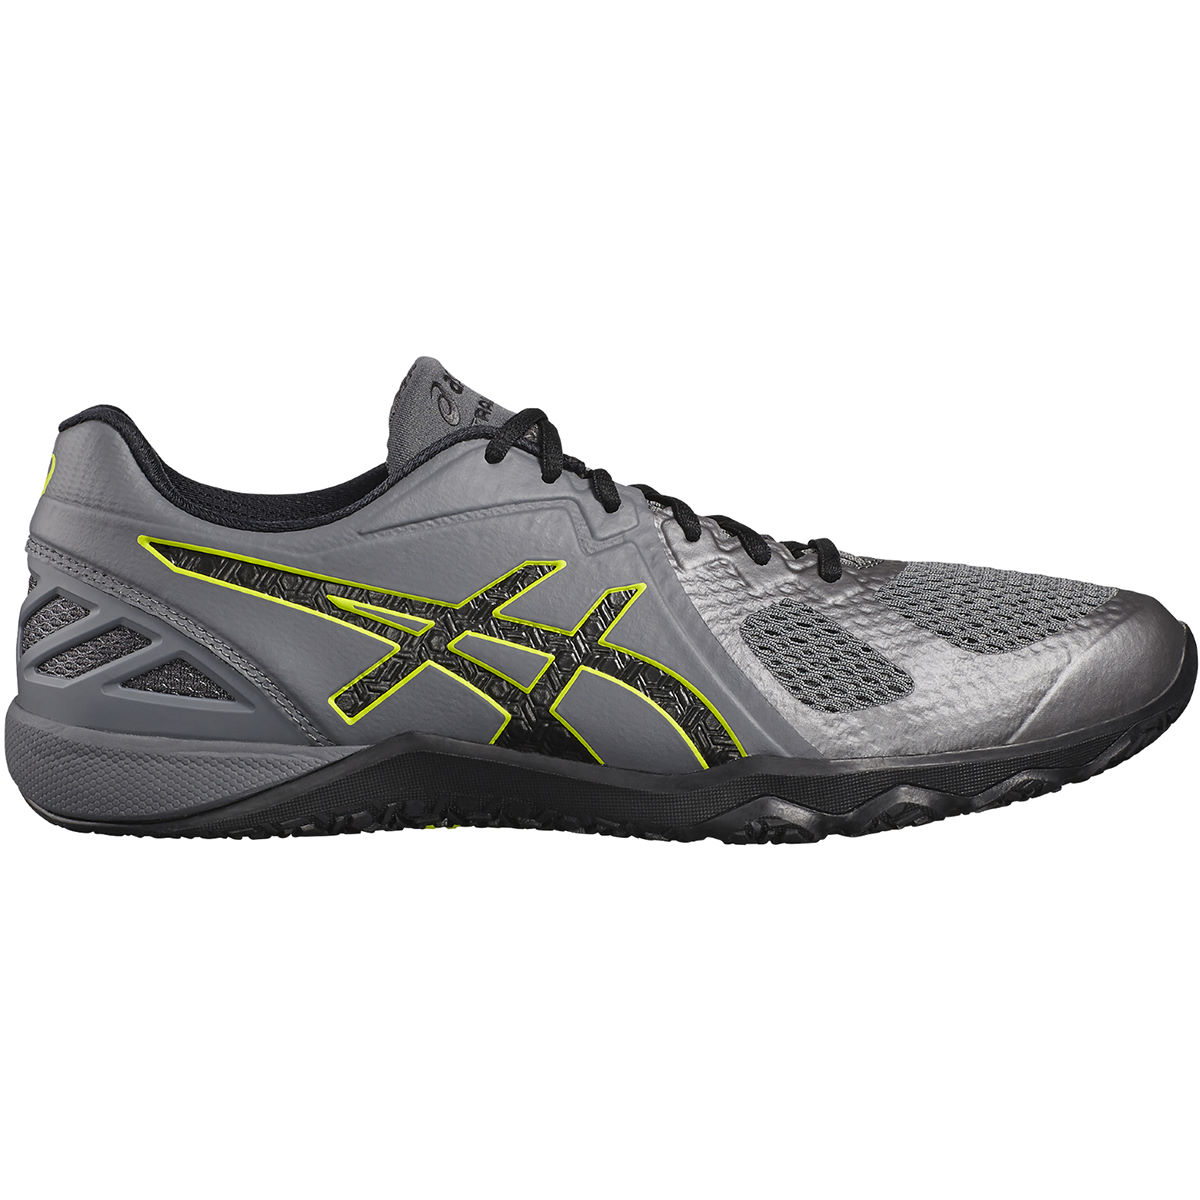 Asics conviction x shoes training running shoes carbon black energy aw17 s703n 9790 7